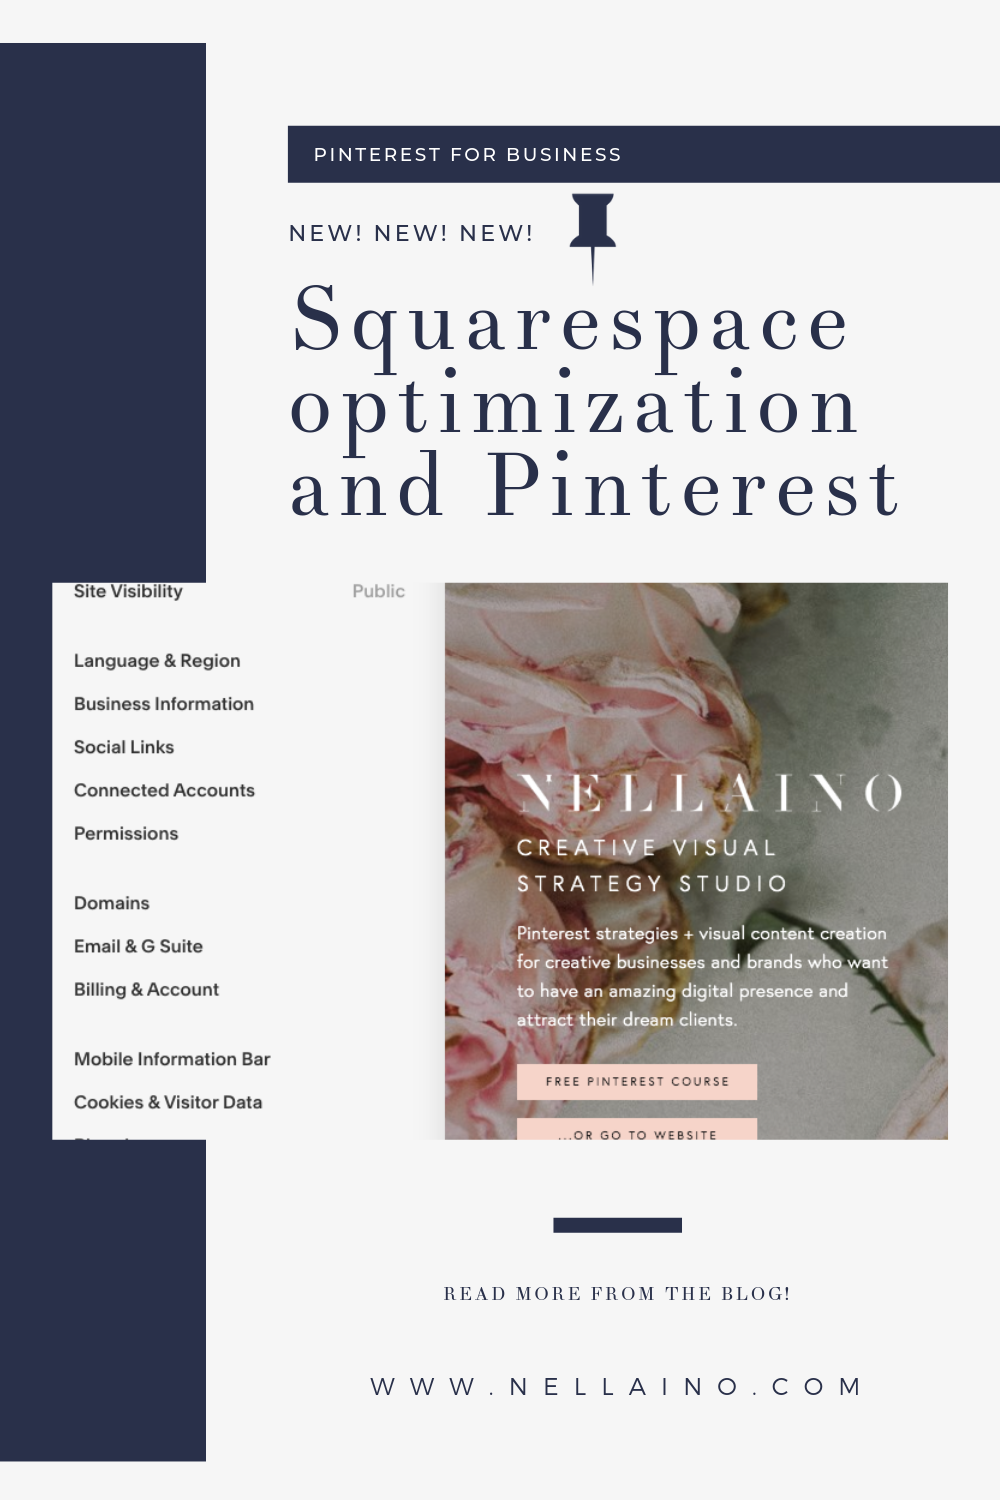 You have not read this anywhere else! The complete guide how to use Squarespace blog and website together with Pinterest, and optimize it perfectly! Visit www.nellaino.com/blog #squarespacetips #pinteresthelp #seo #pinterestmarketing